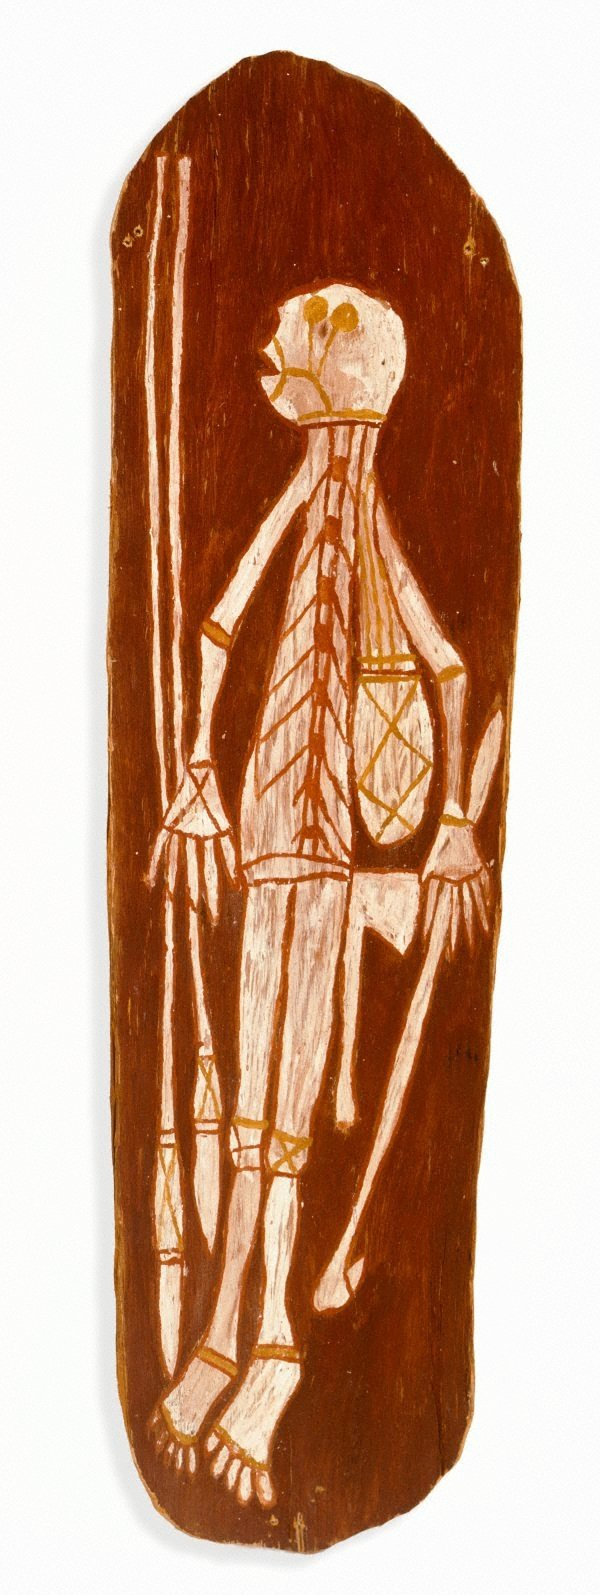 An image of Spirit with two spears, spear thrower, axe and bag